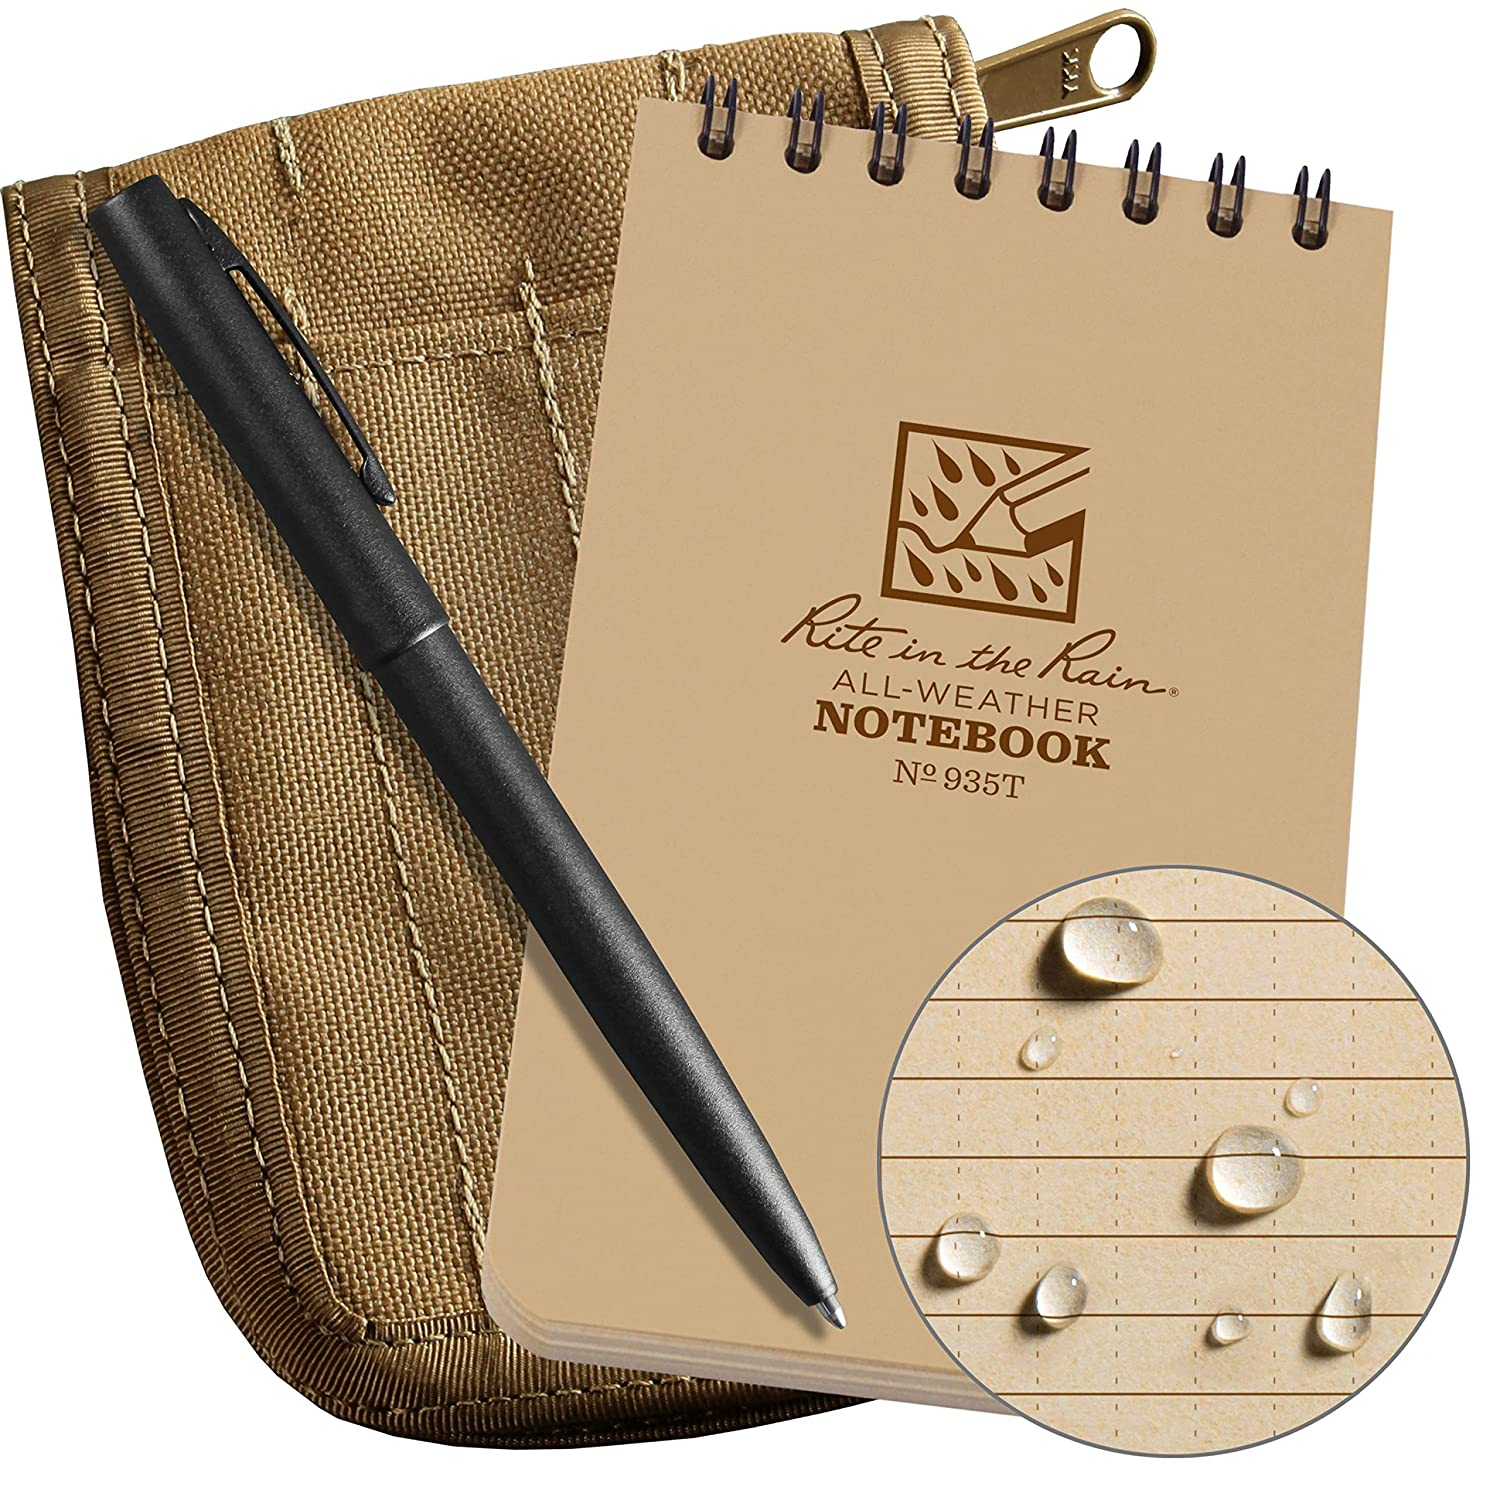 Rite In The Rain Weatherproof 3 X 5 Top Spiral Ballpoint Diagram And Notepad Royalty Free Stock Photos Notebook Kit Tan Cordura Fabric Cover An Pen No